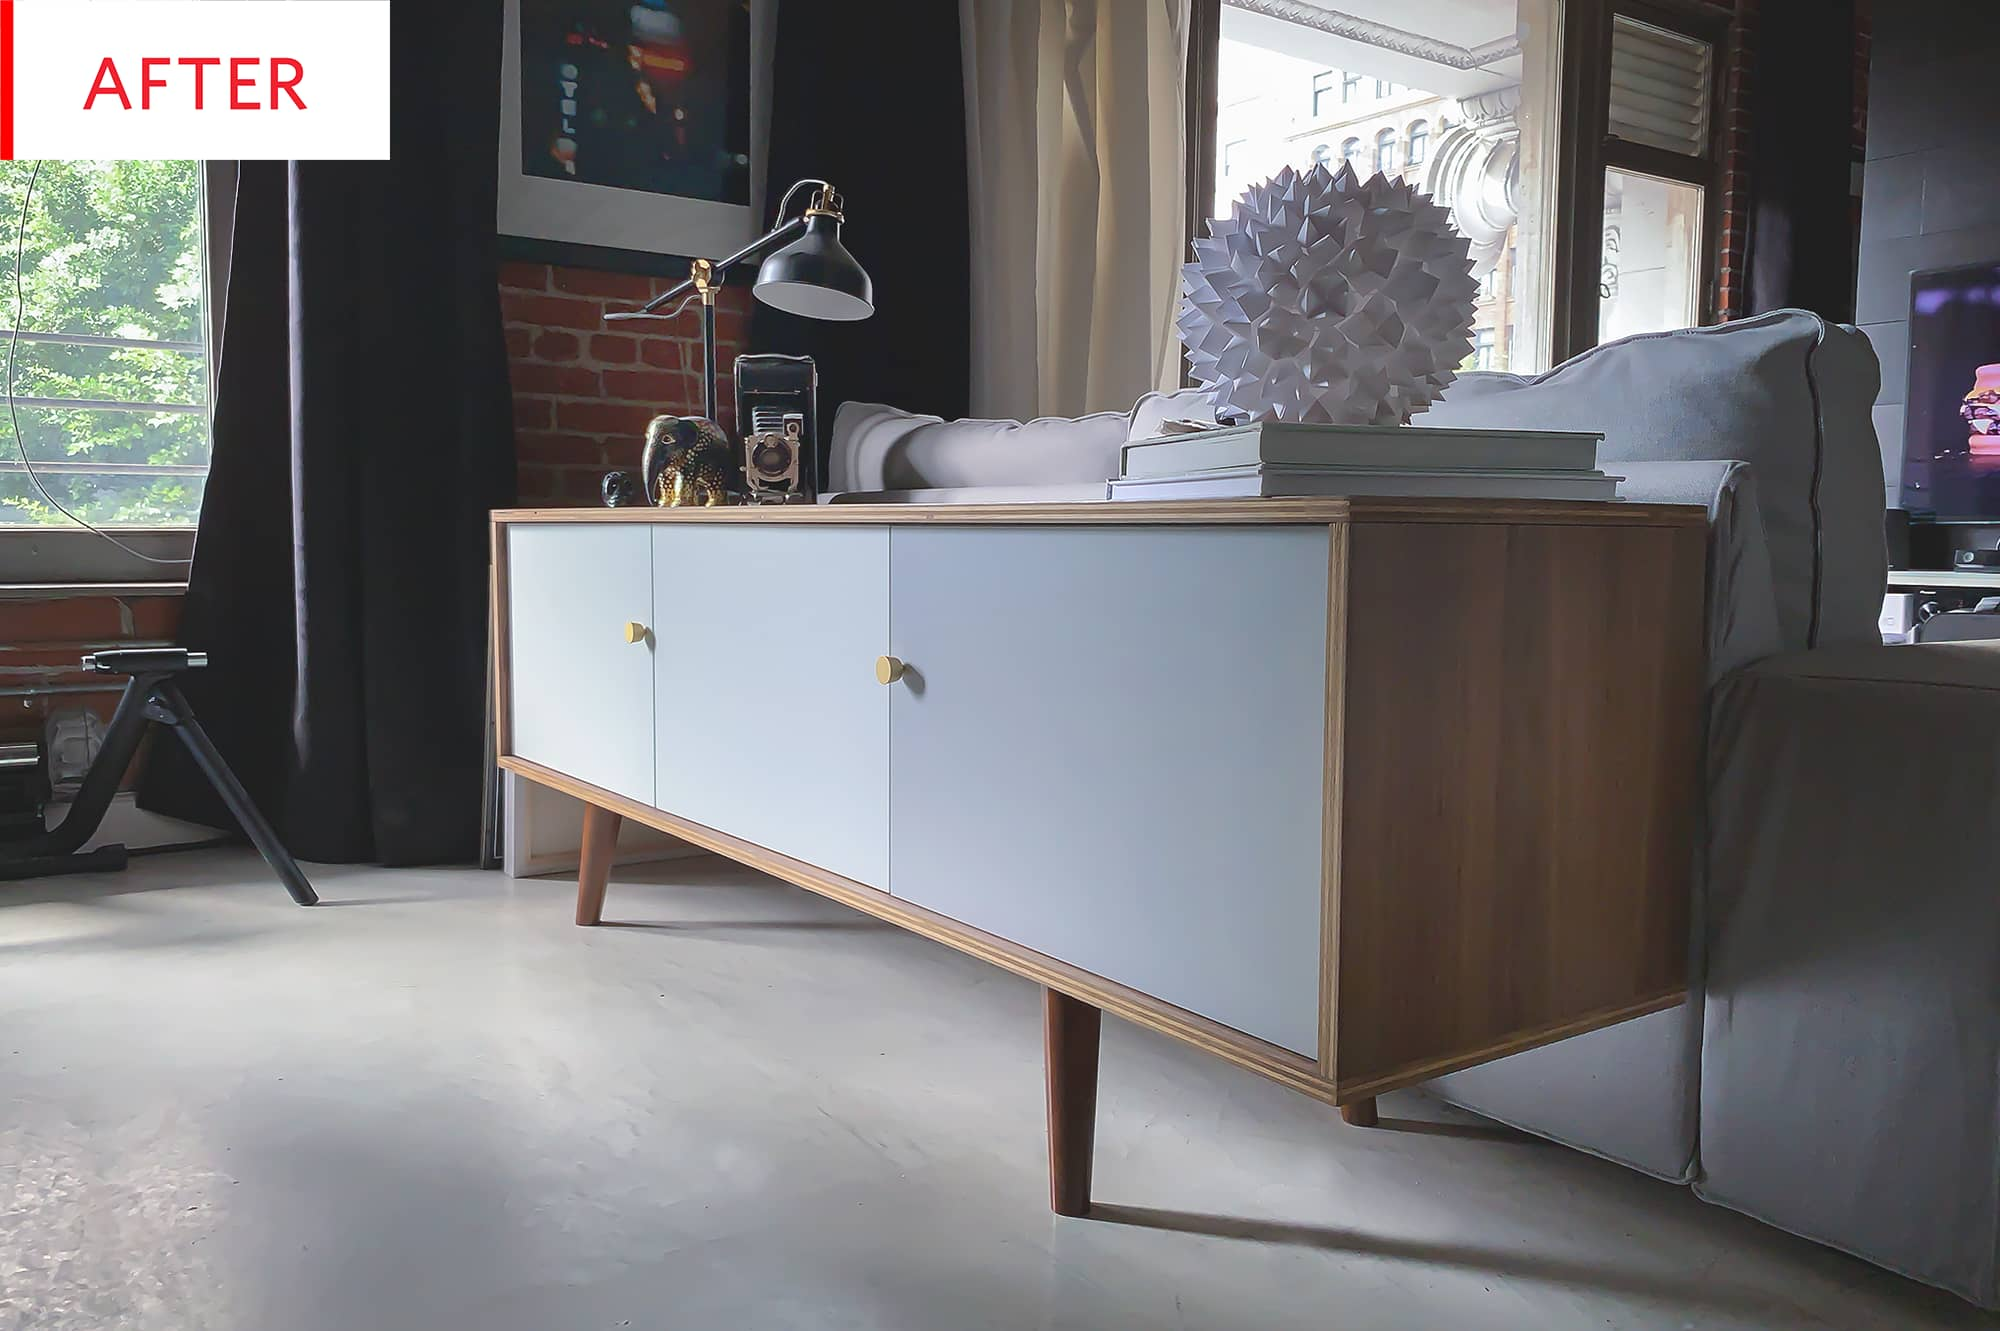 Low Credenza Ikea : Sektion cabinet series ikea mount cabinets low on wall to